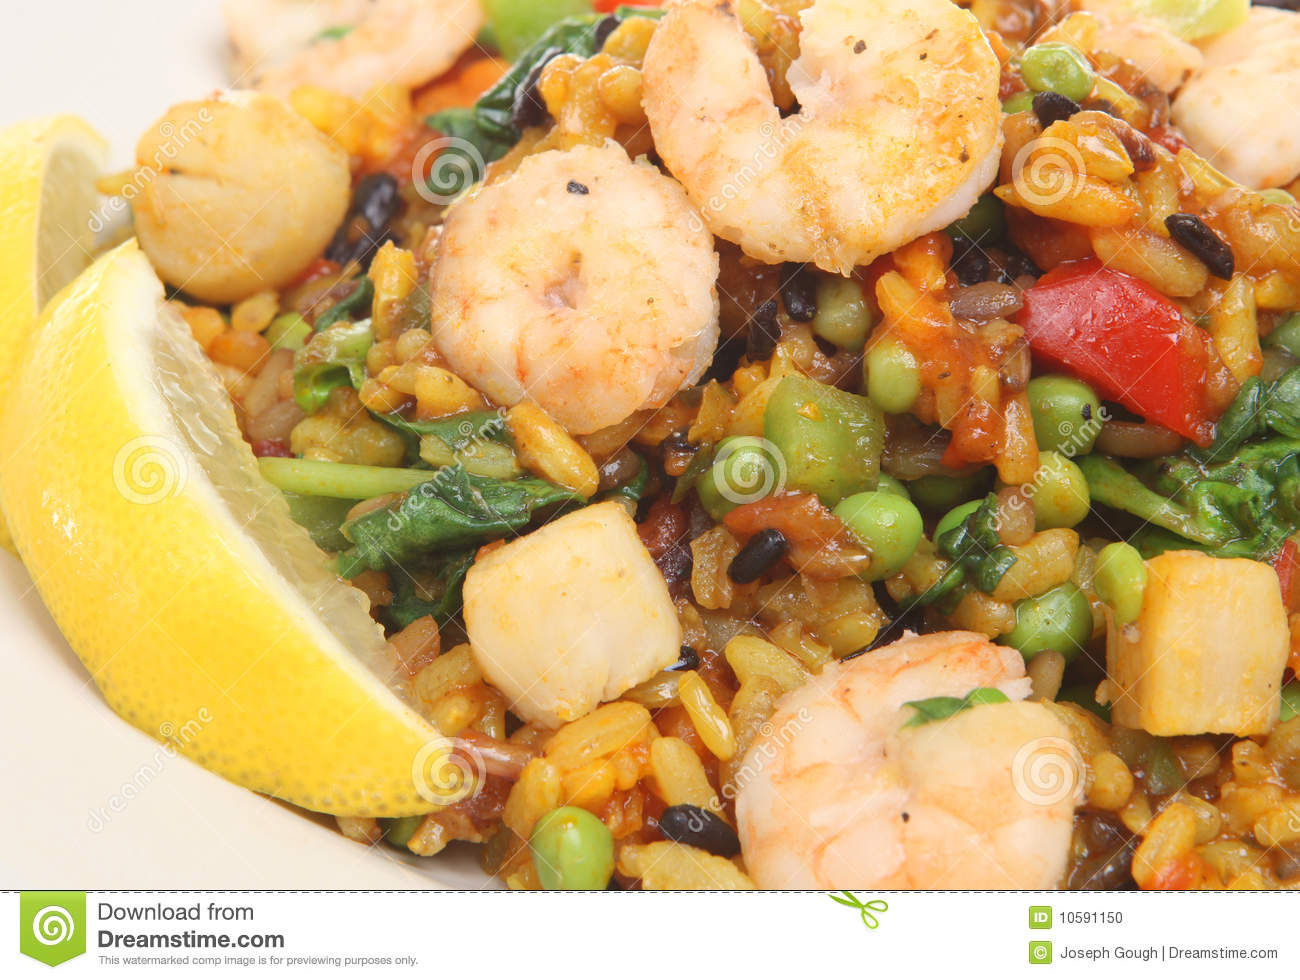 Paella with king prawns and scallops.